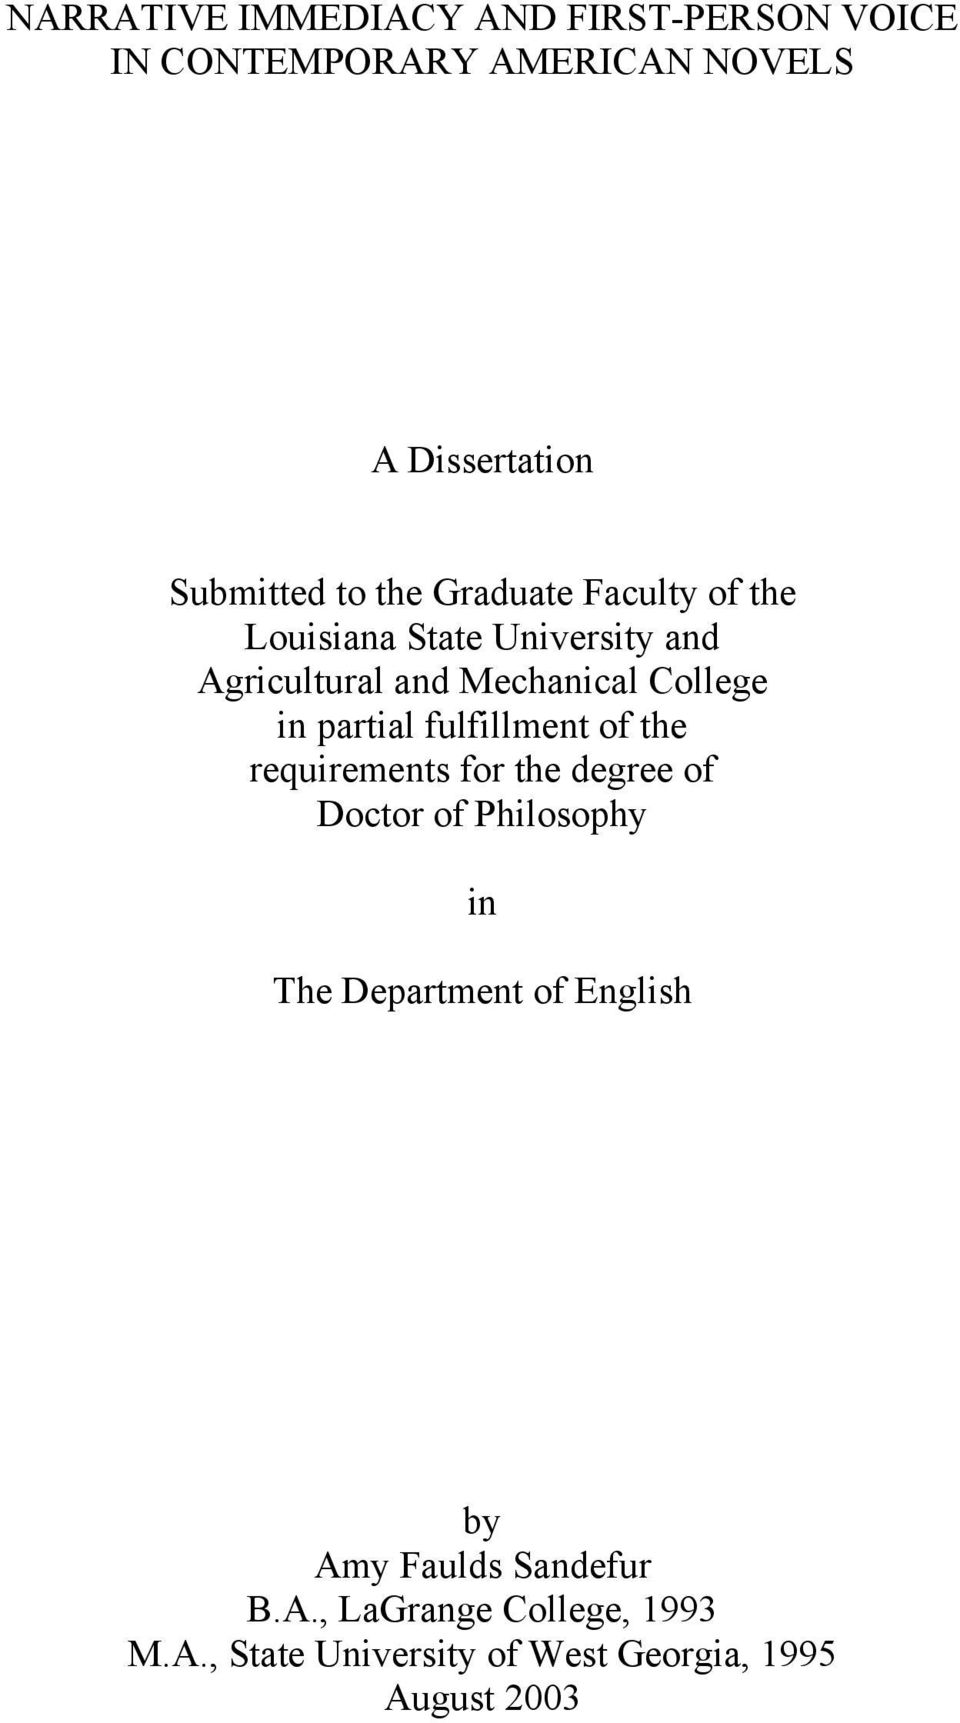 partial fulfillment of the requirements for the degree of Doctor of Philosophy in The Department of